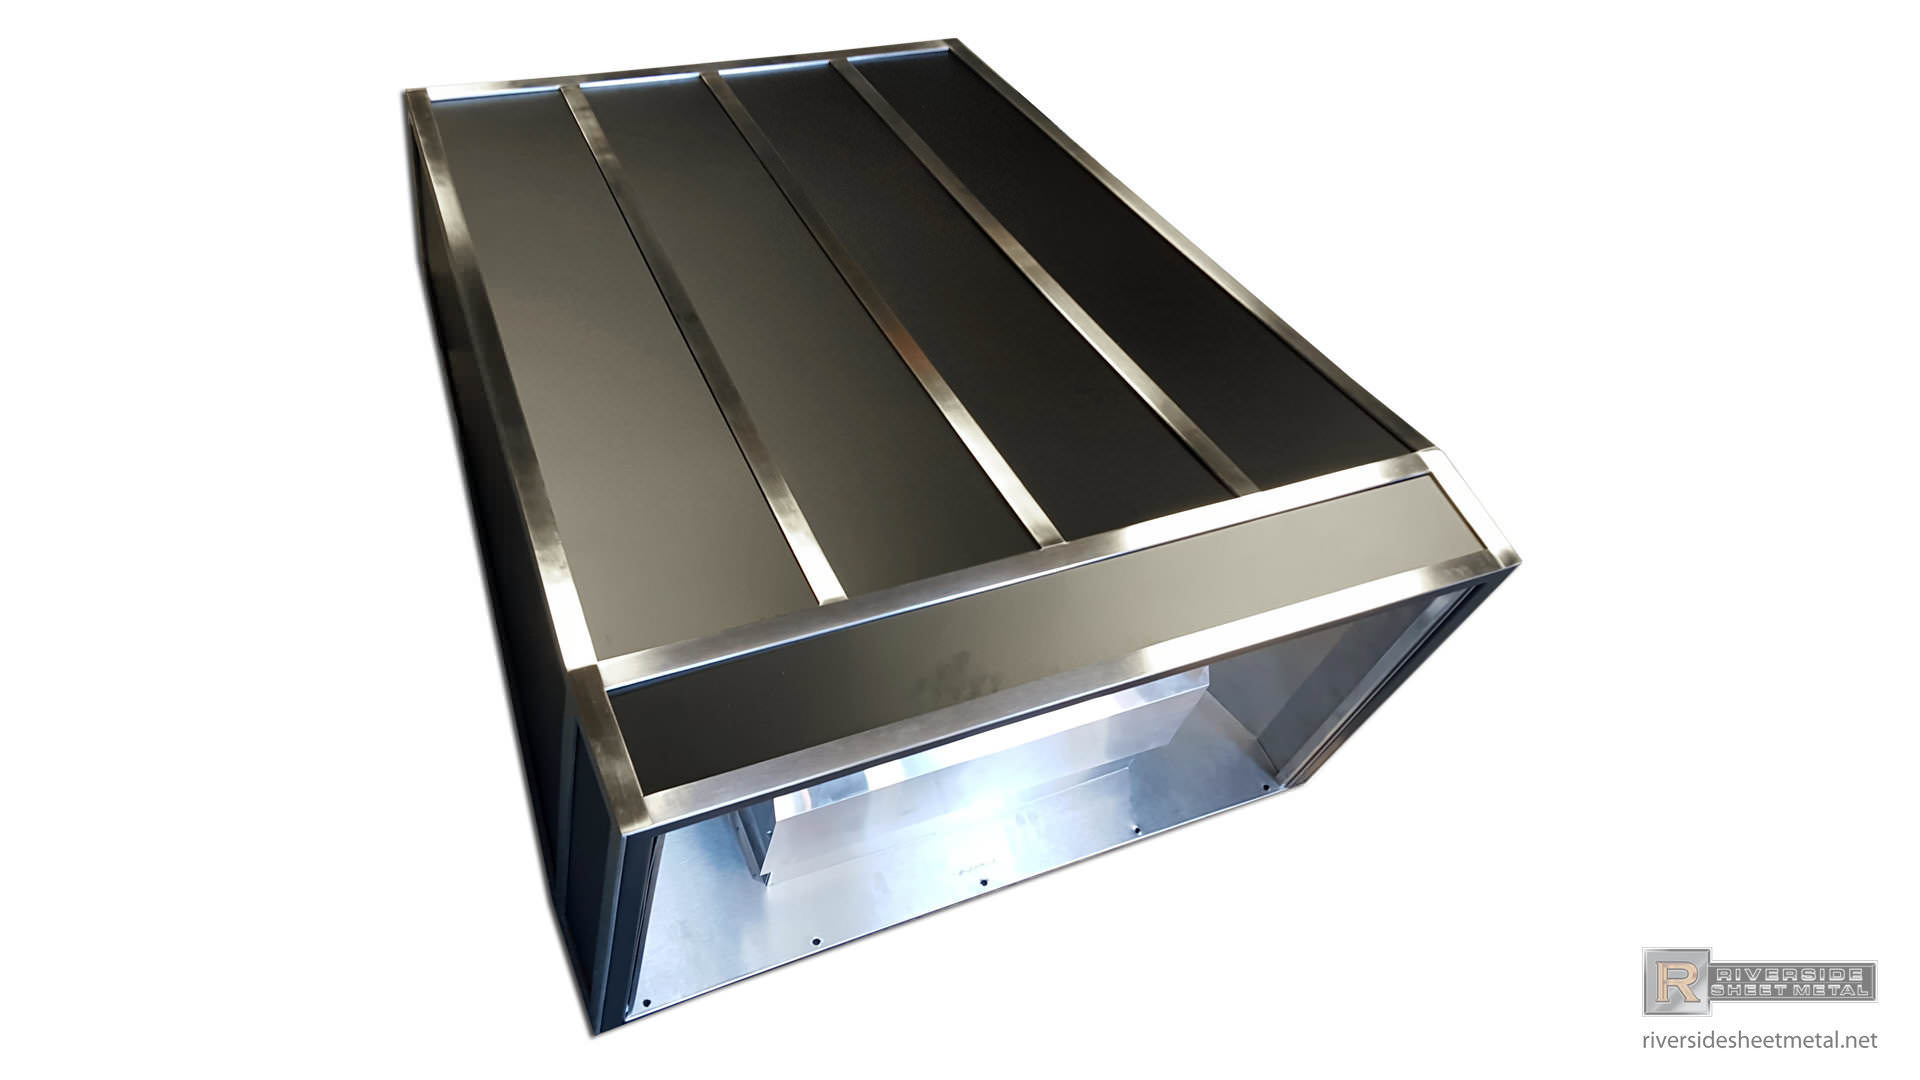 Steel Hood Vent Powder Coated Black With A French Curve Style Bell Range